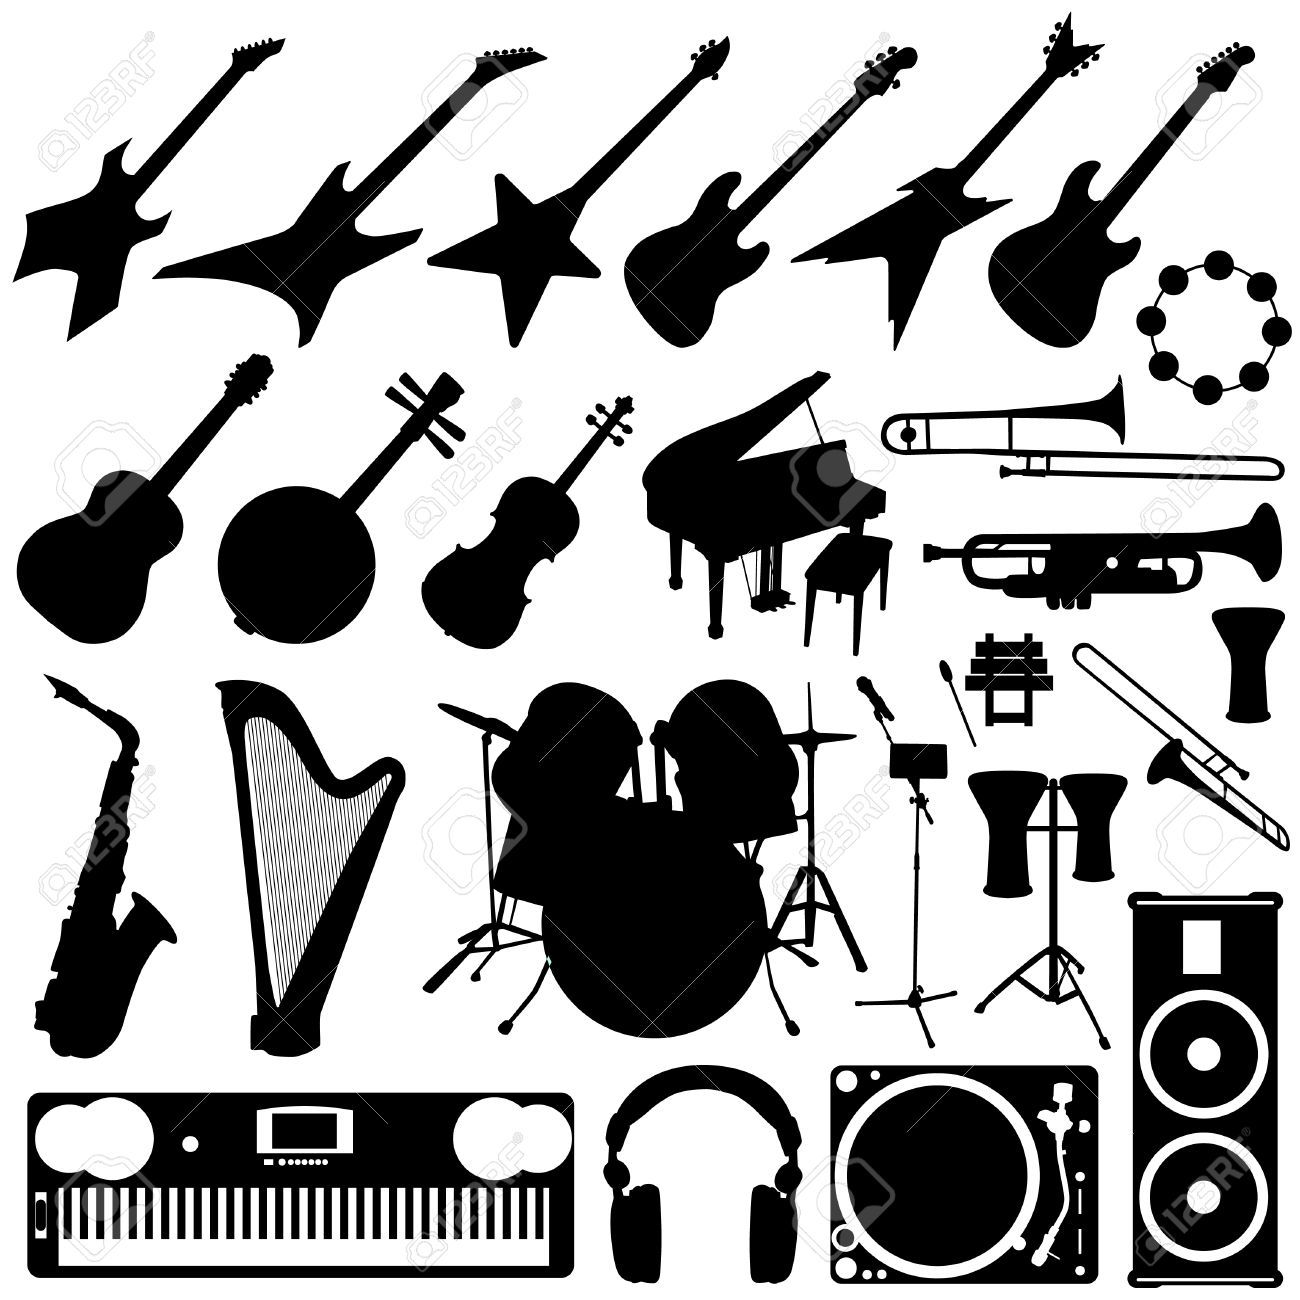 band musical instruments clipart images galleries with a bite. Black Bedroom Furniture Sets. Home Design Ideas